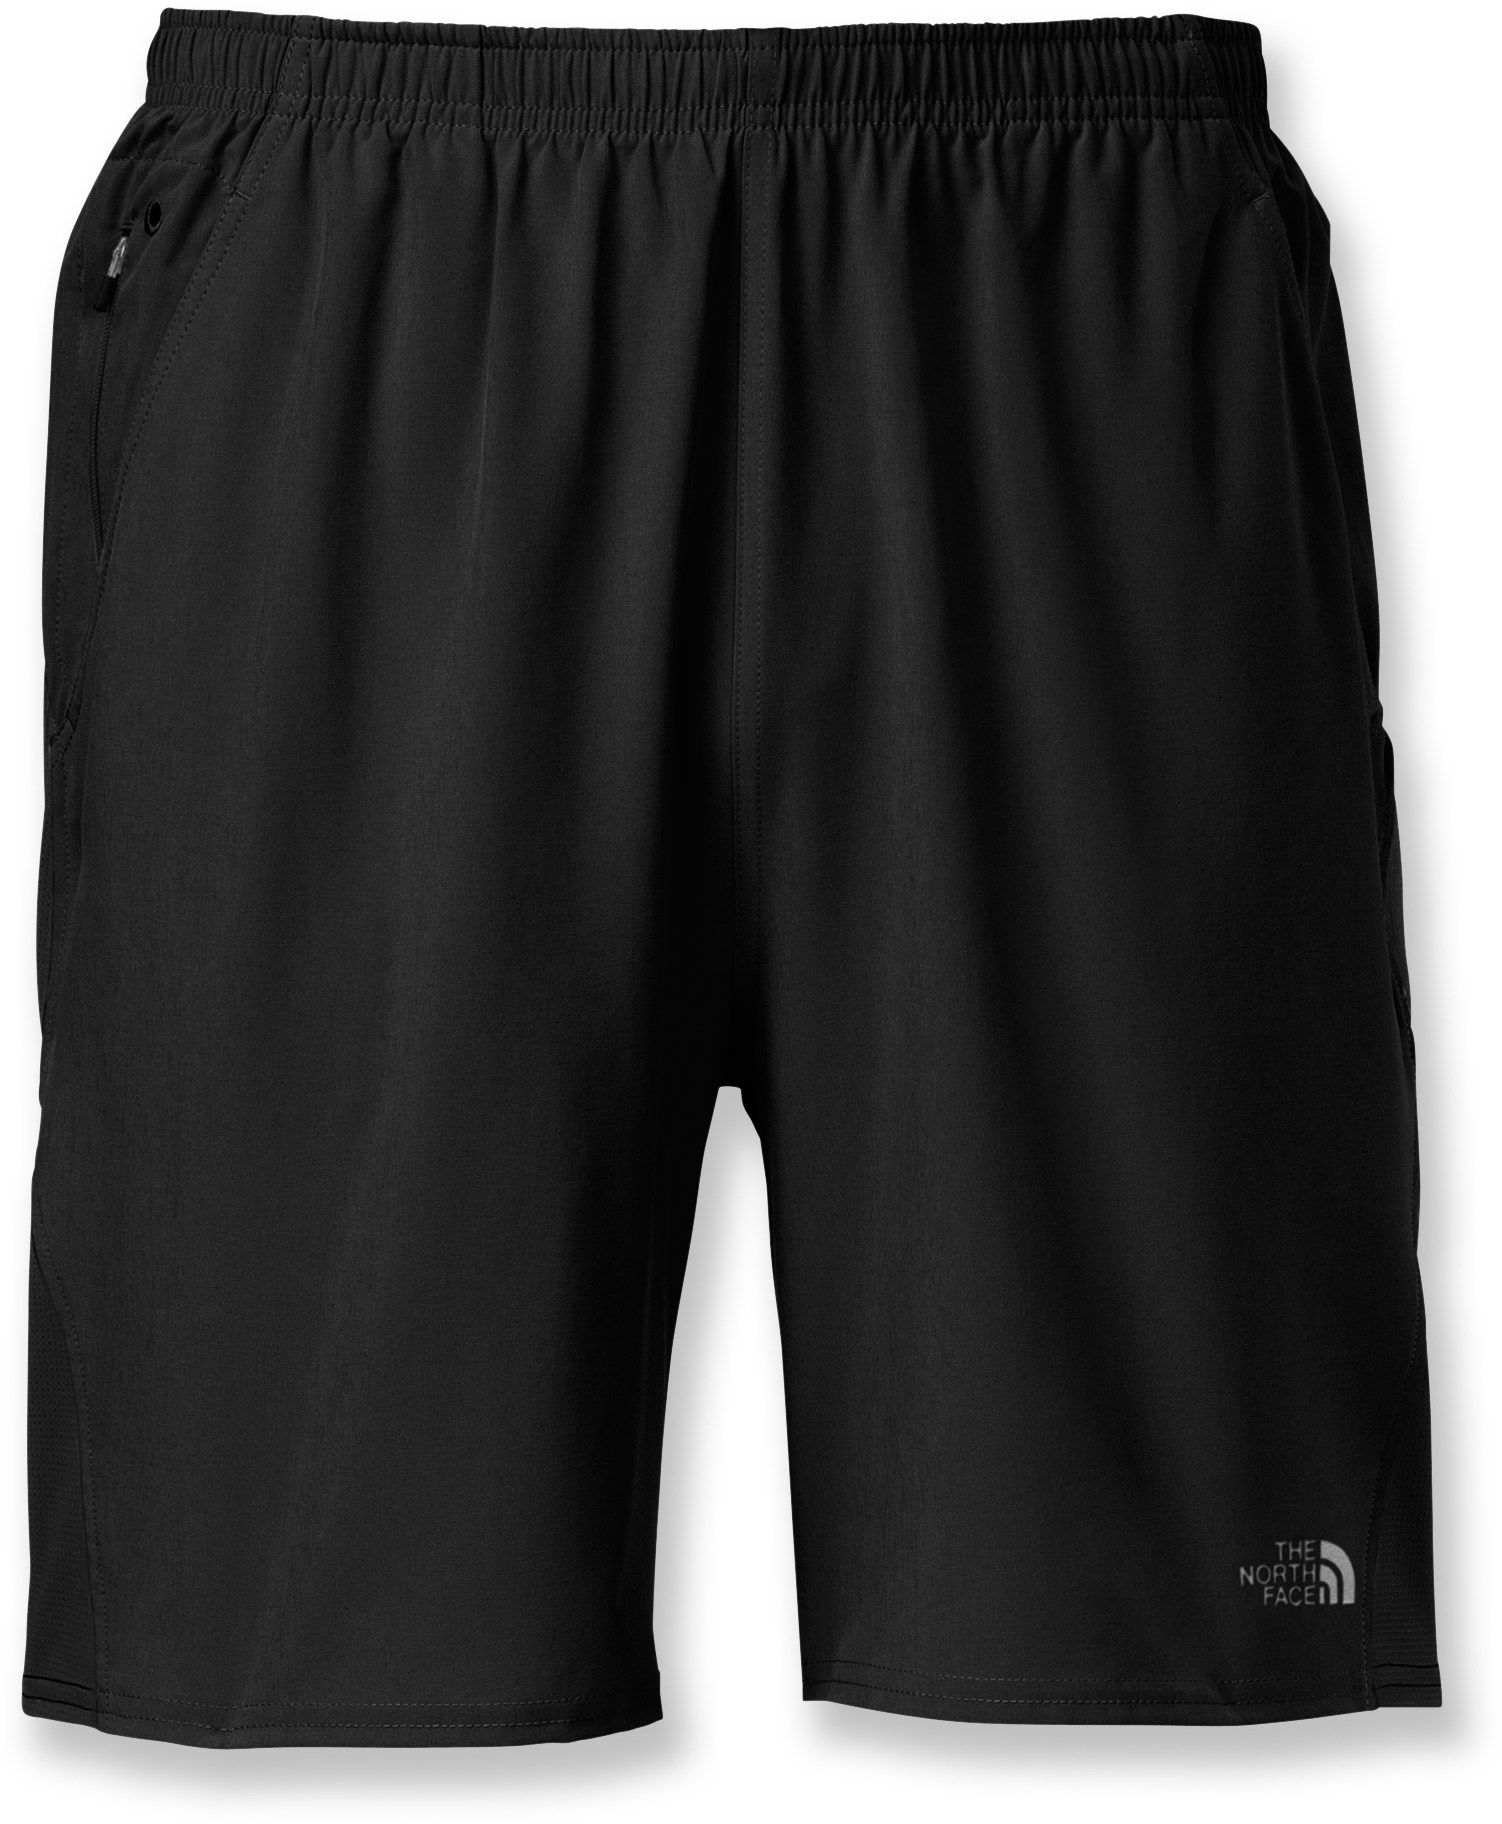 4eaea441cb The North Face Male Agility Running Shorts - Men's Long | *Apparel ...